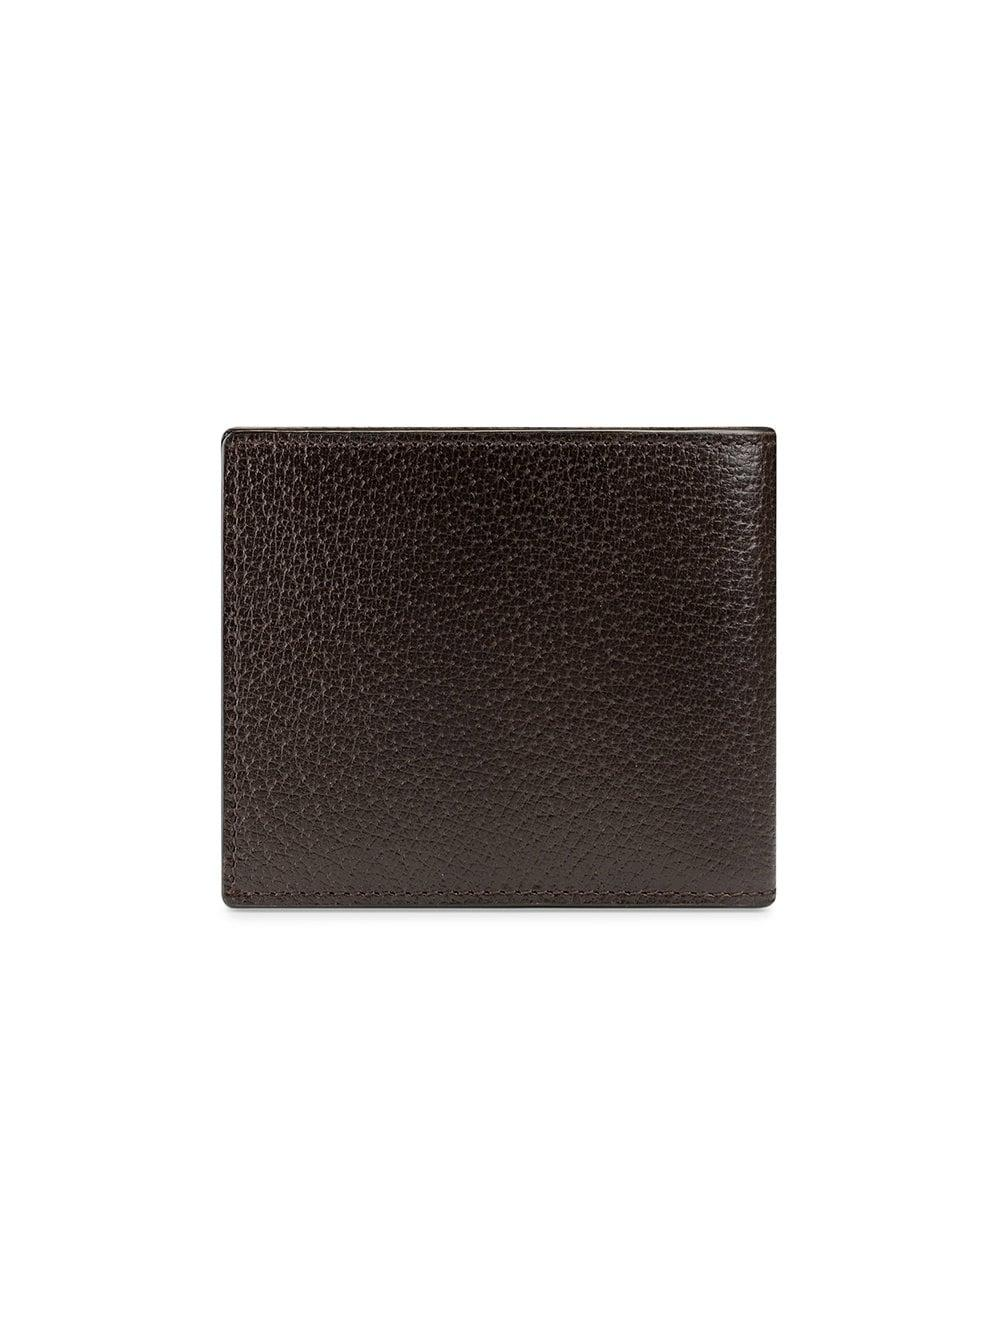 1eb42da1220ab8 Gucci GG Marmont Leather Bi-fold Wallet in Brown for Men - Lyst